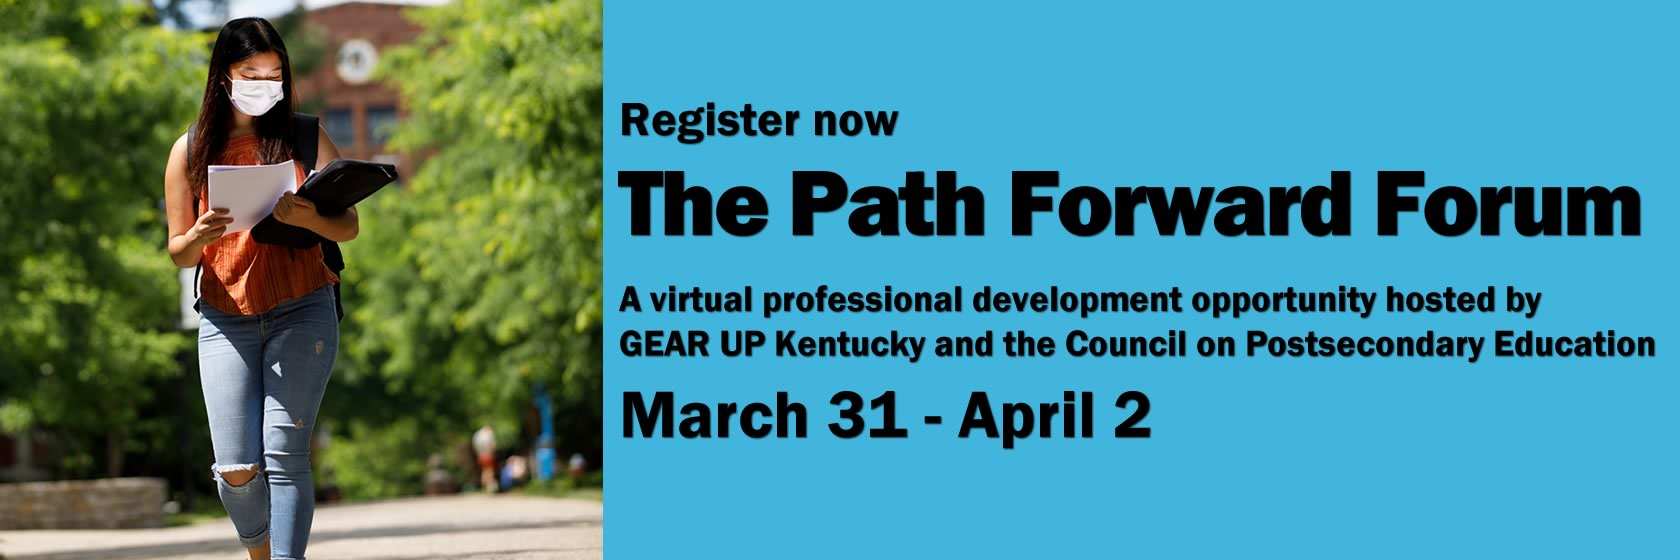 Register for The Path Forward Forum.